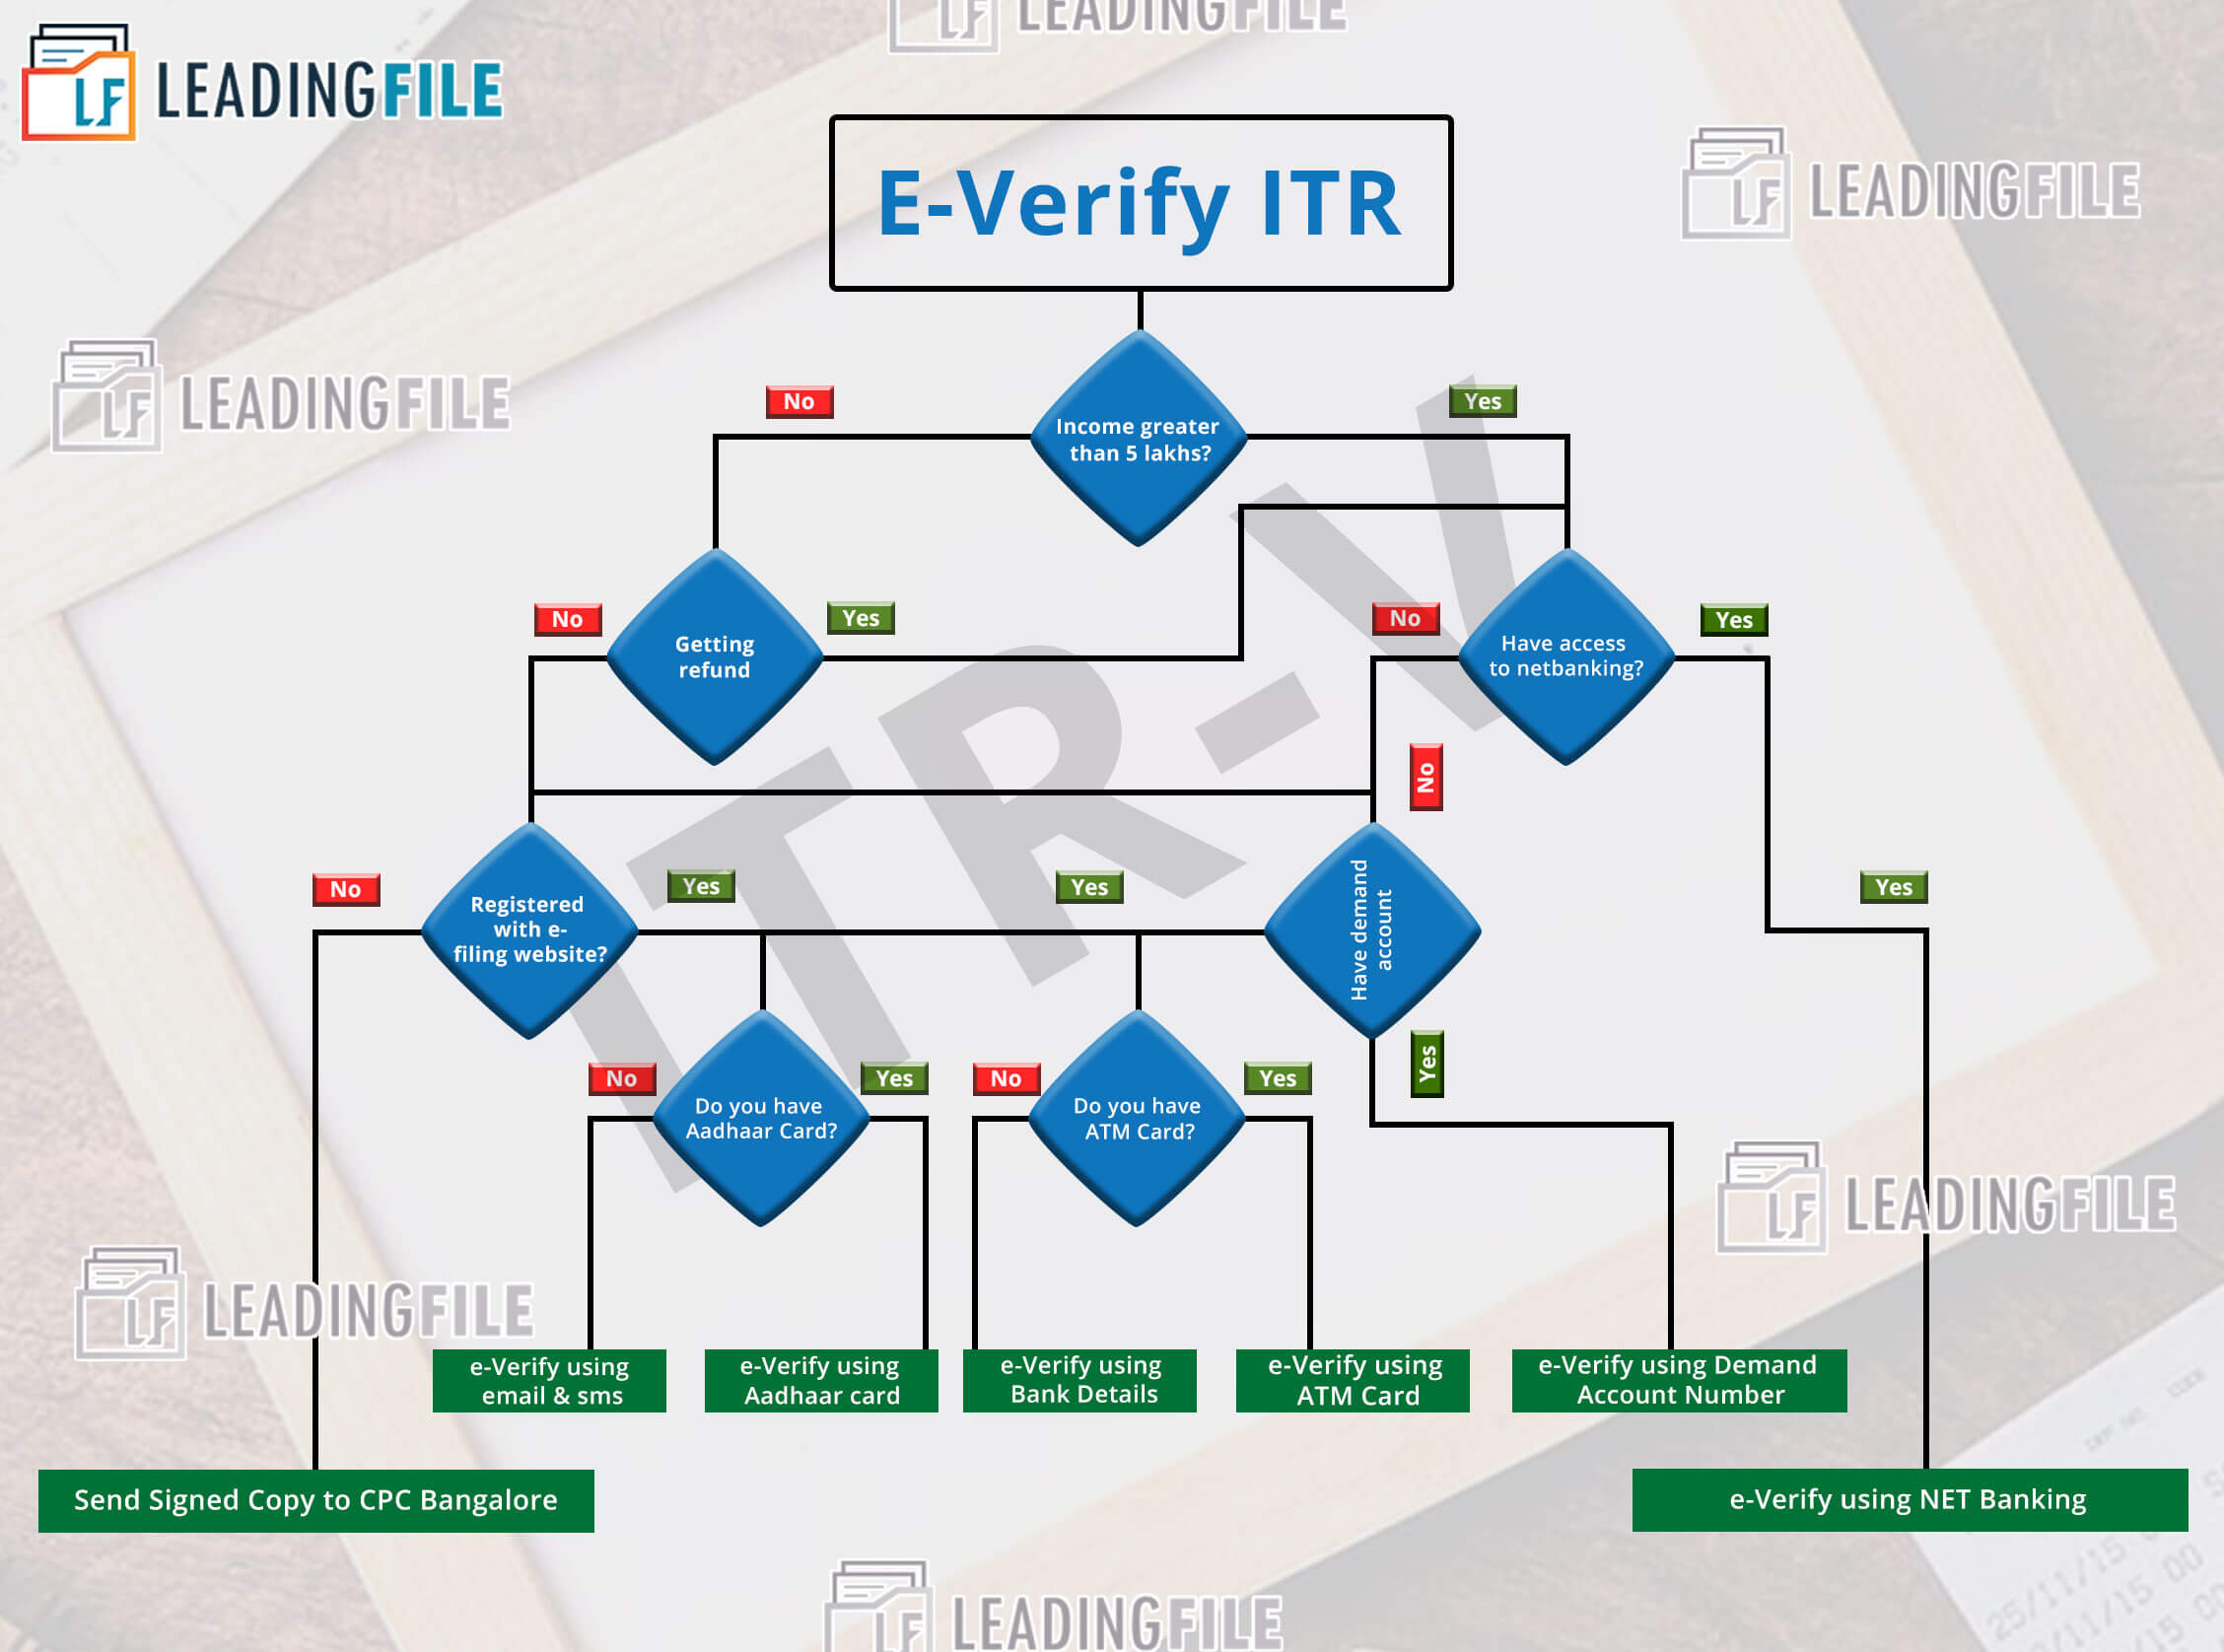 e-verify itr